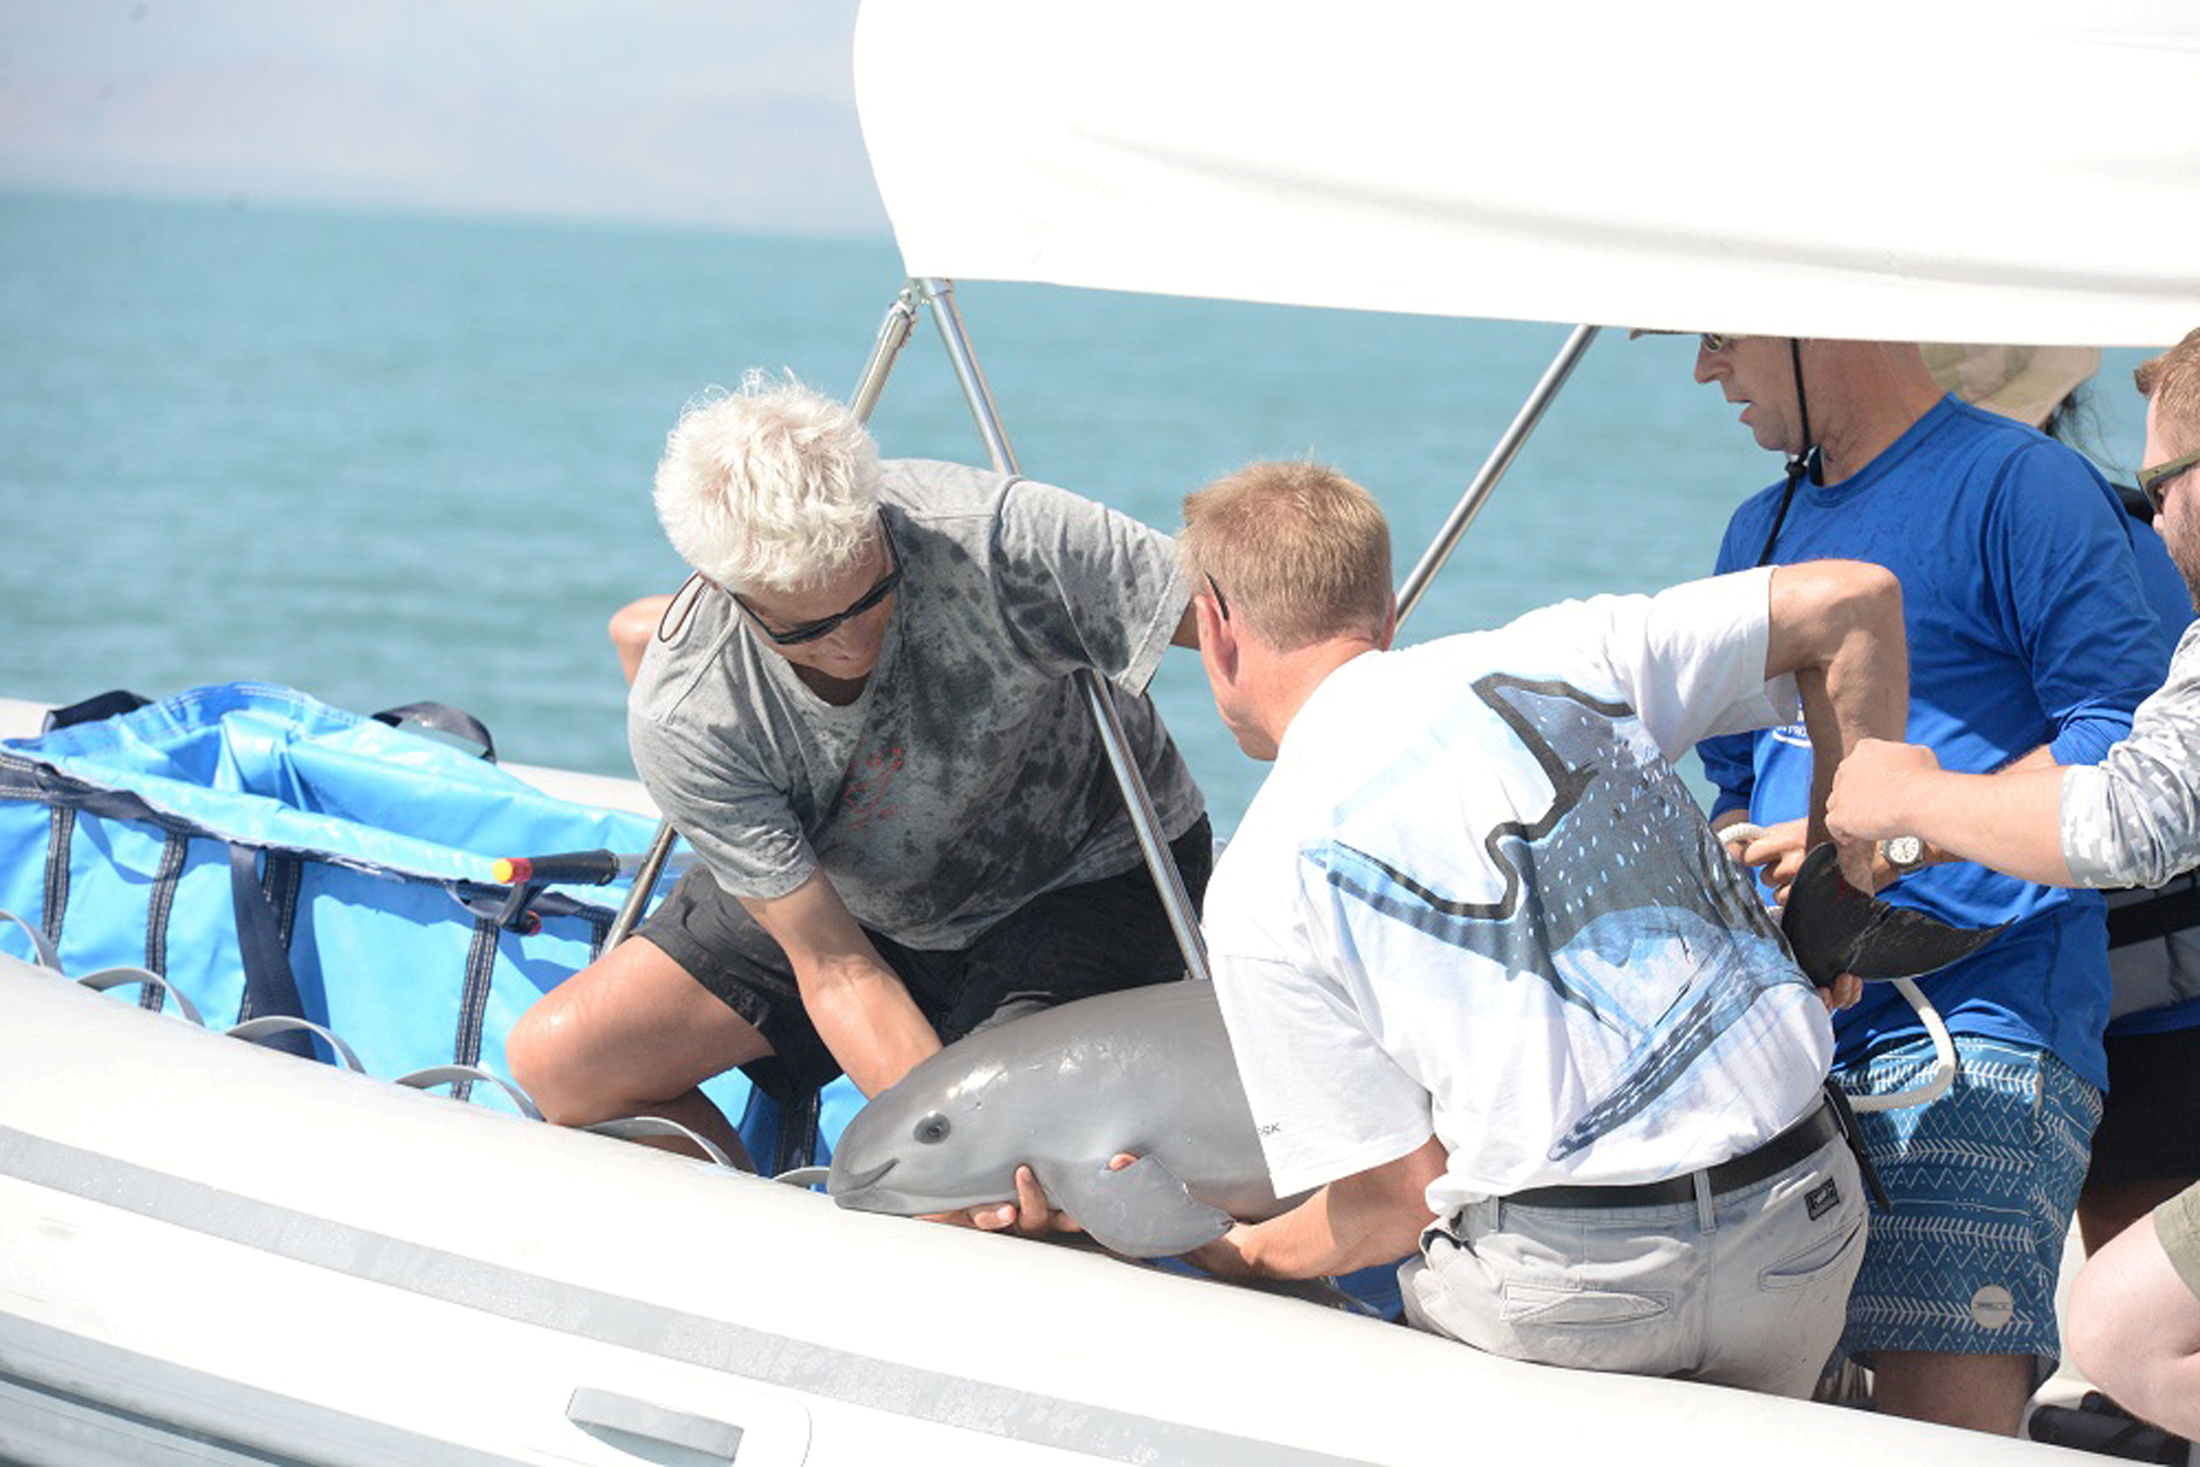 FILE PHOTO: Scientists return a vaquita, a tiny stubby-nosed porpoise on the verge of extinction, into the ocean as part of a conservation project, in the Sea of Cortez, Baja California, Mexico October 18, 2017.  Semarnat/Handout via REUTERS ATTENTION EDITORS - THIS IMAGE HAS BEEN SUPPLIED BY A THIRD PARTY./File Photo